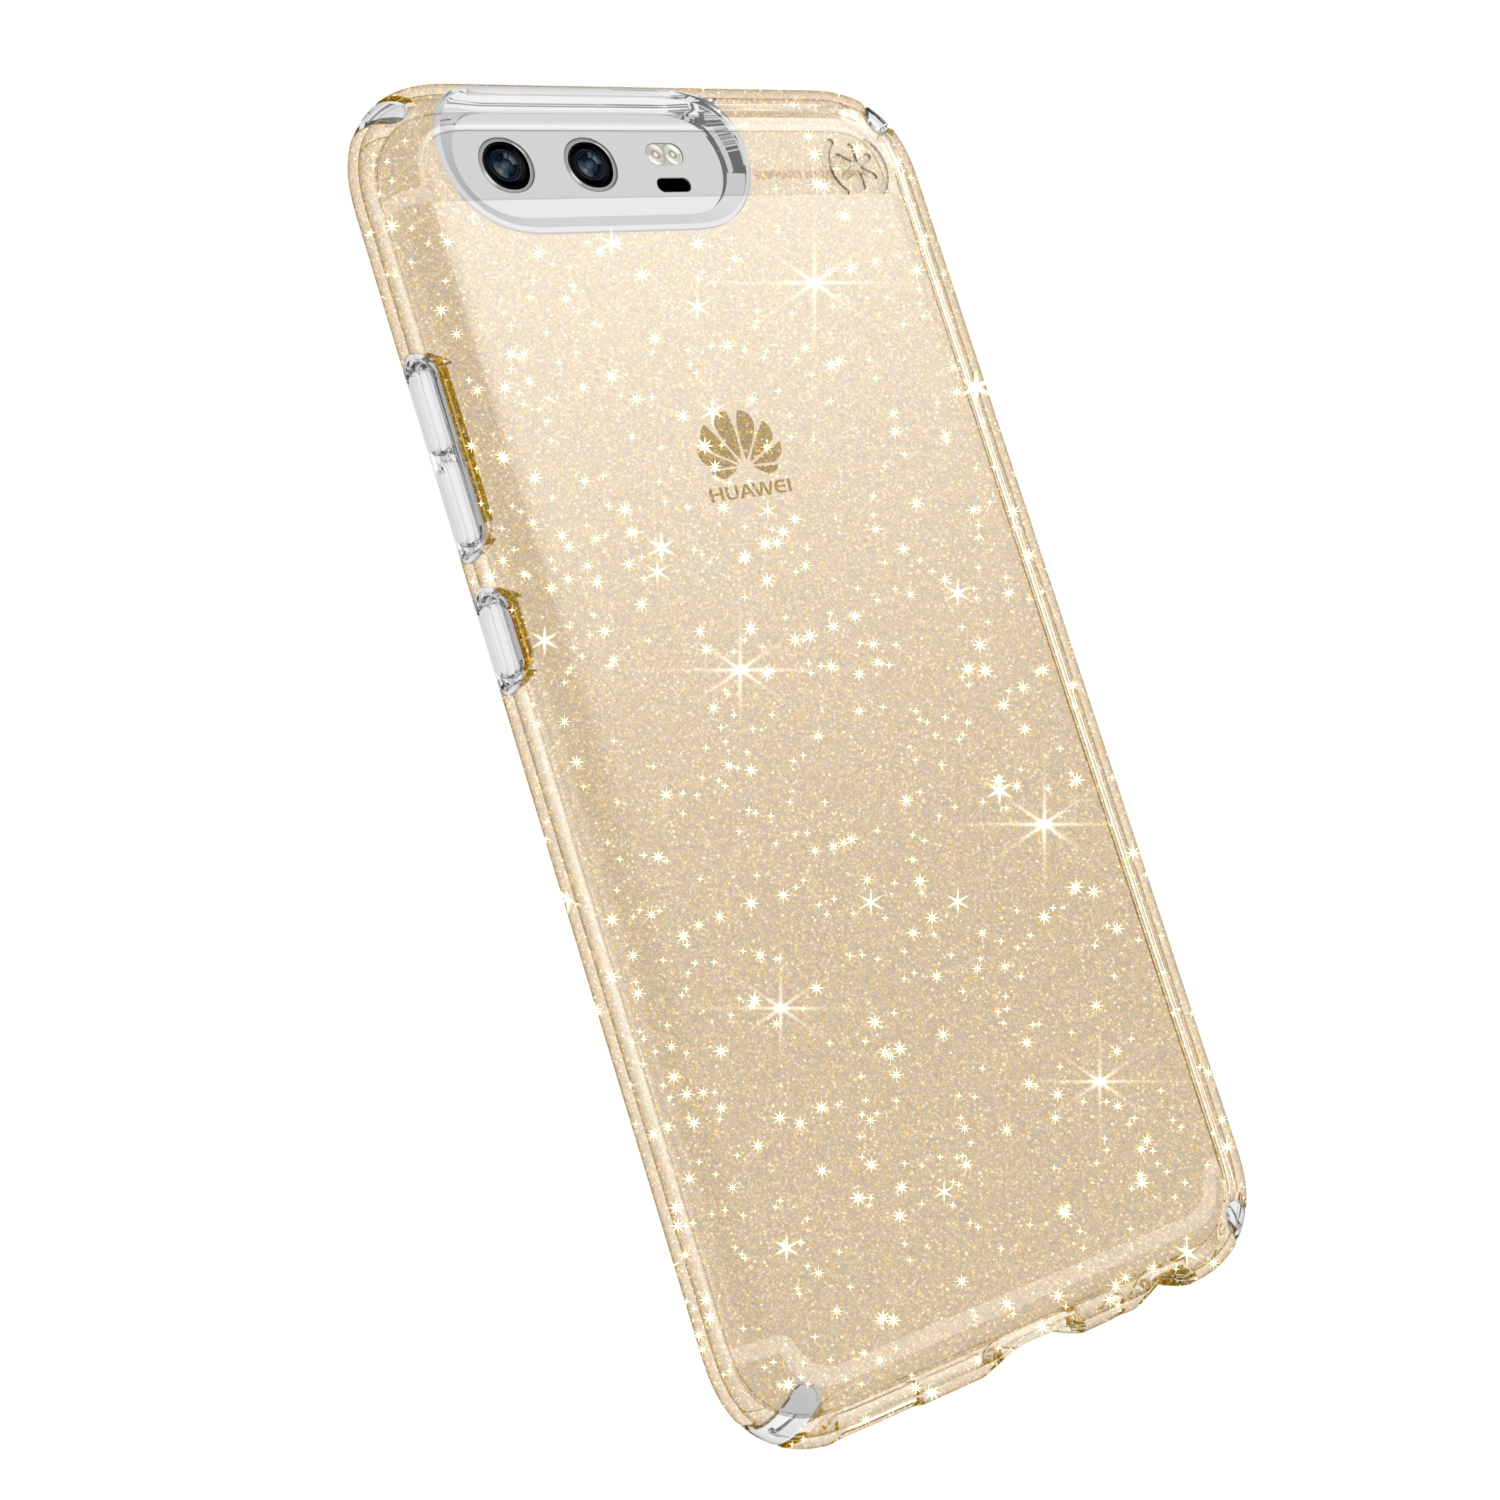 Search and compare best prices of Speck Presidio Clear with Glitter Huawei P10 Plus Cases Clear/Gold Glitter in UK